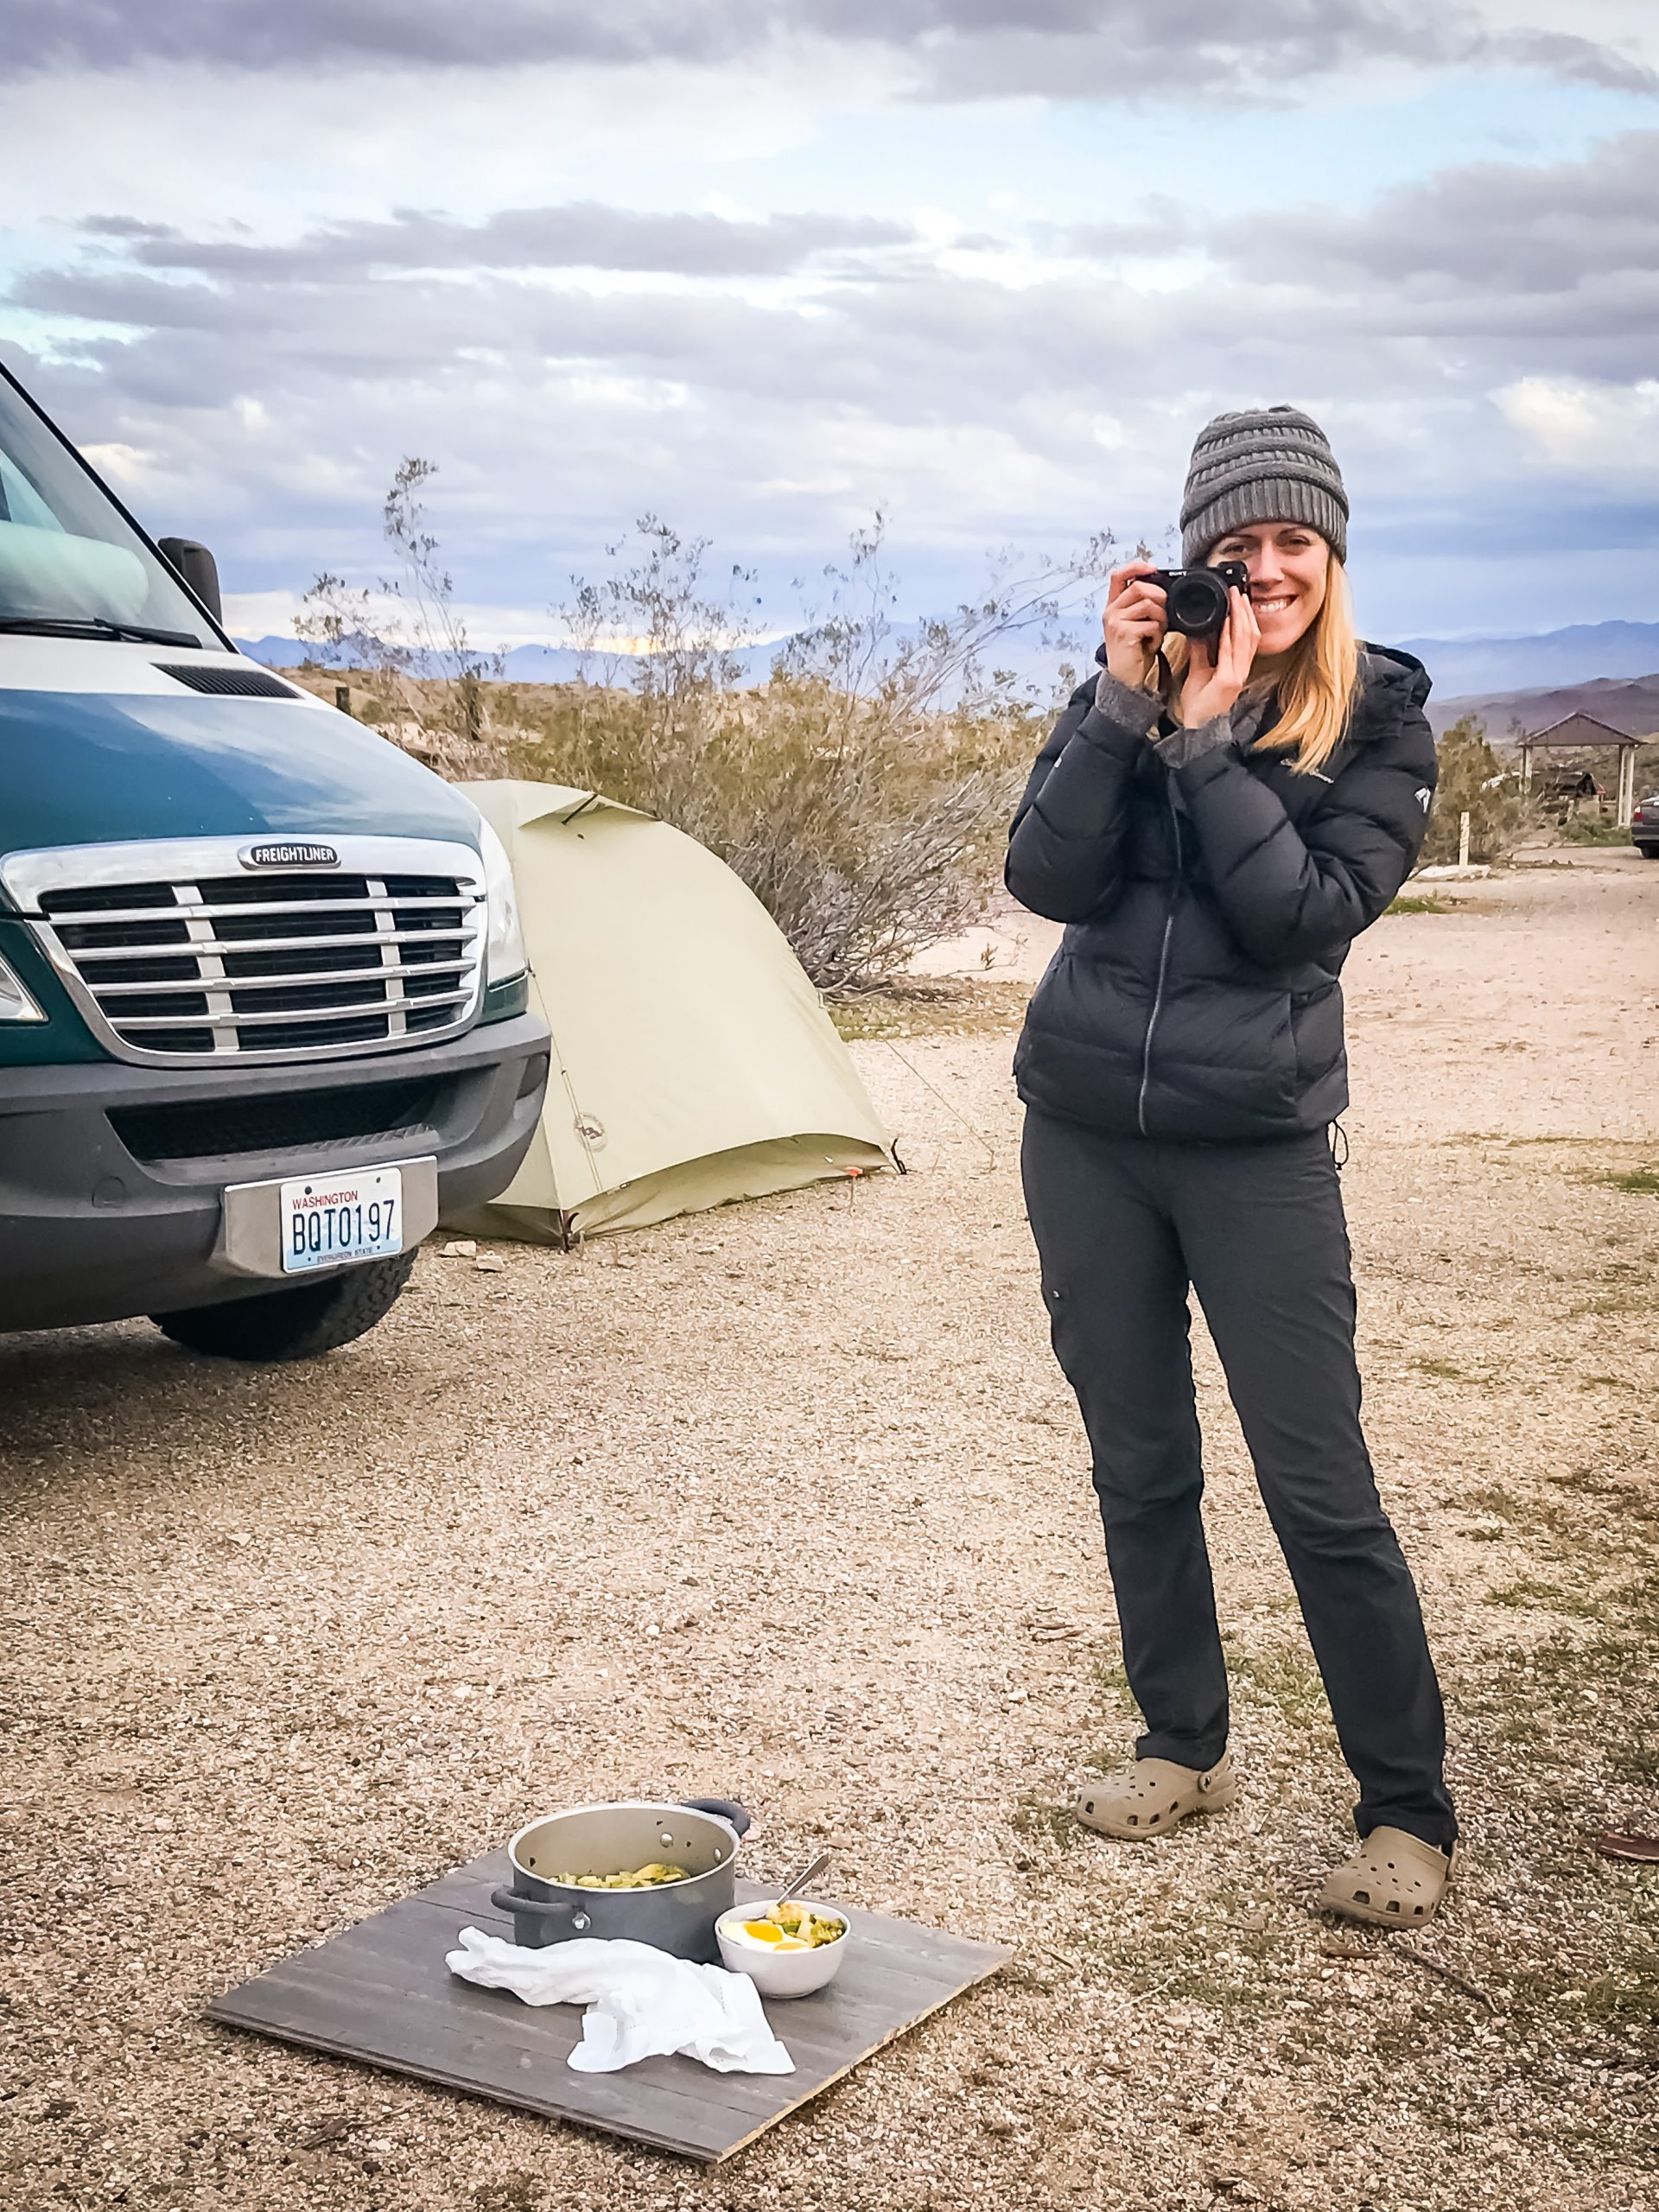 Photographing a meal outdoors for my van life food blog